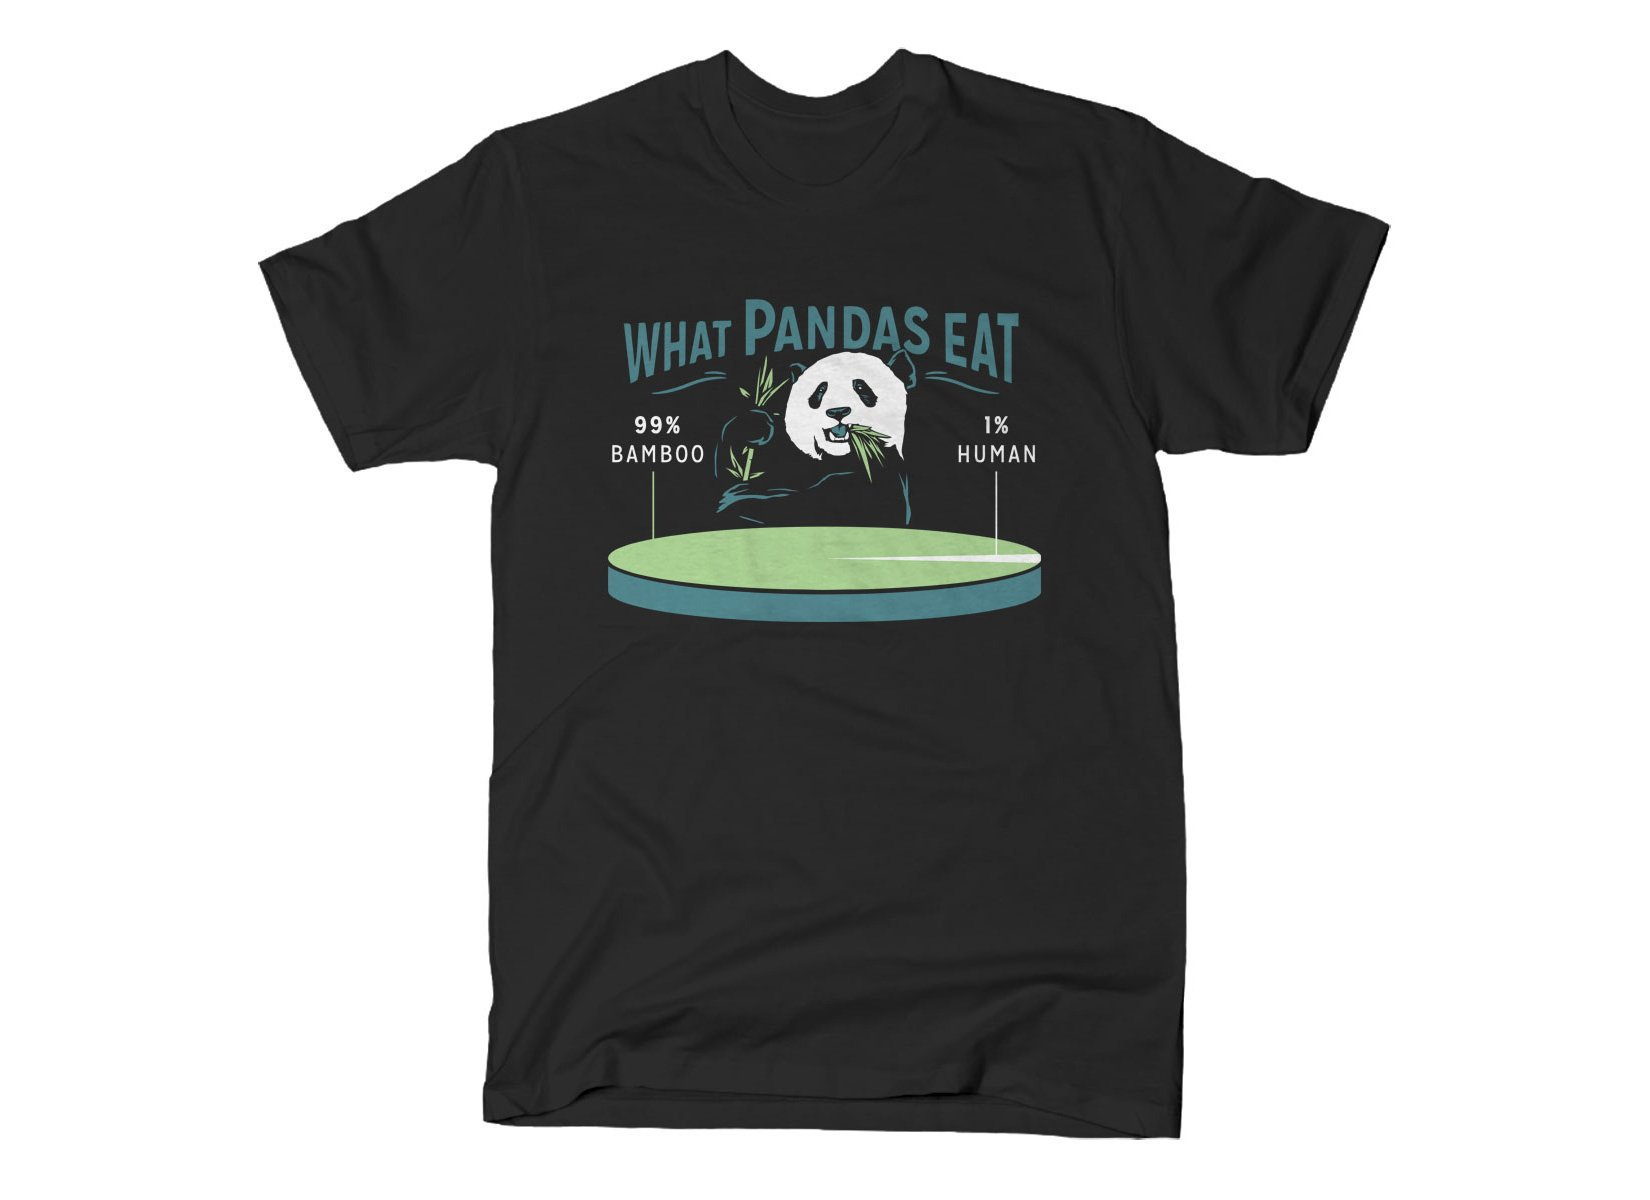 What Pandas Eat on Mens T-Shirt